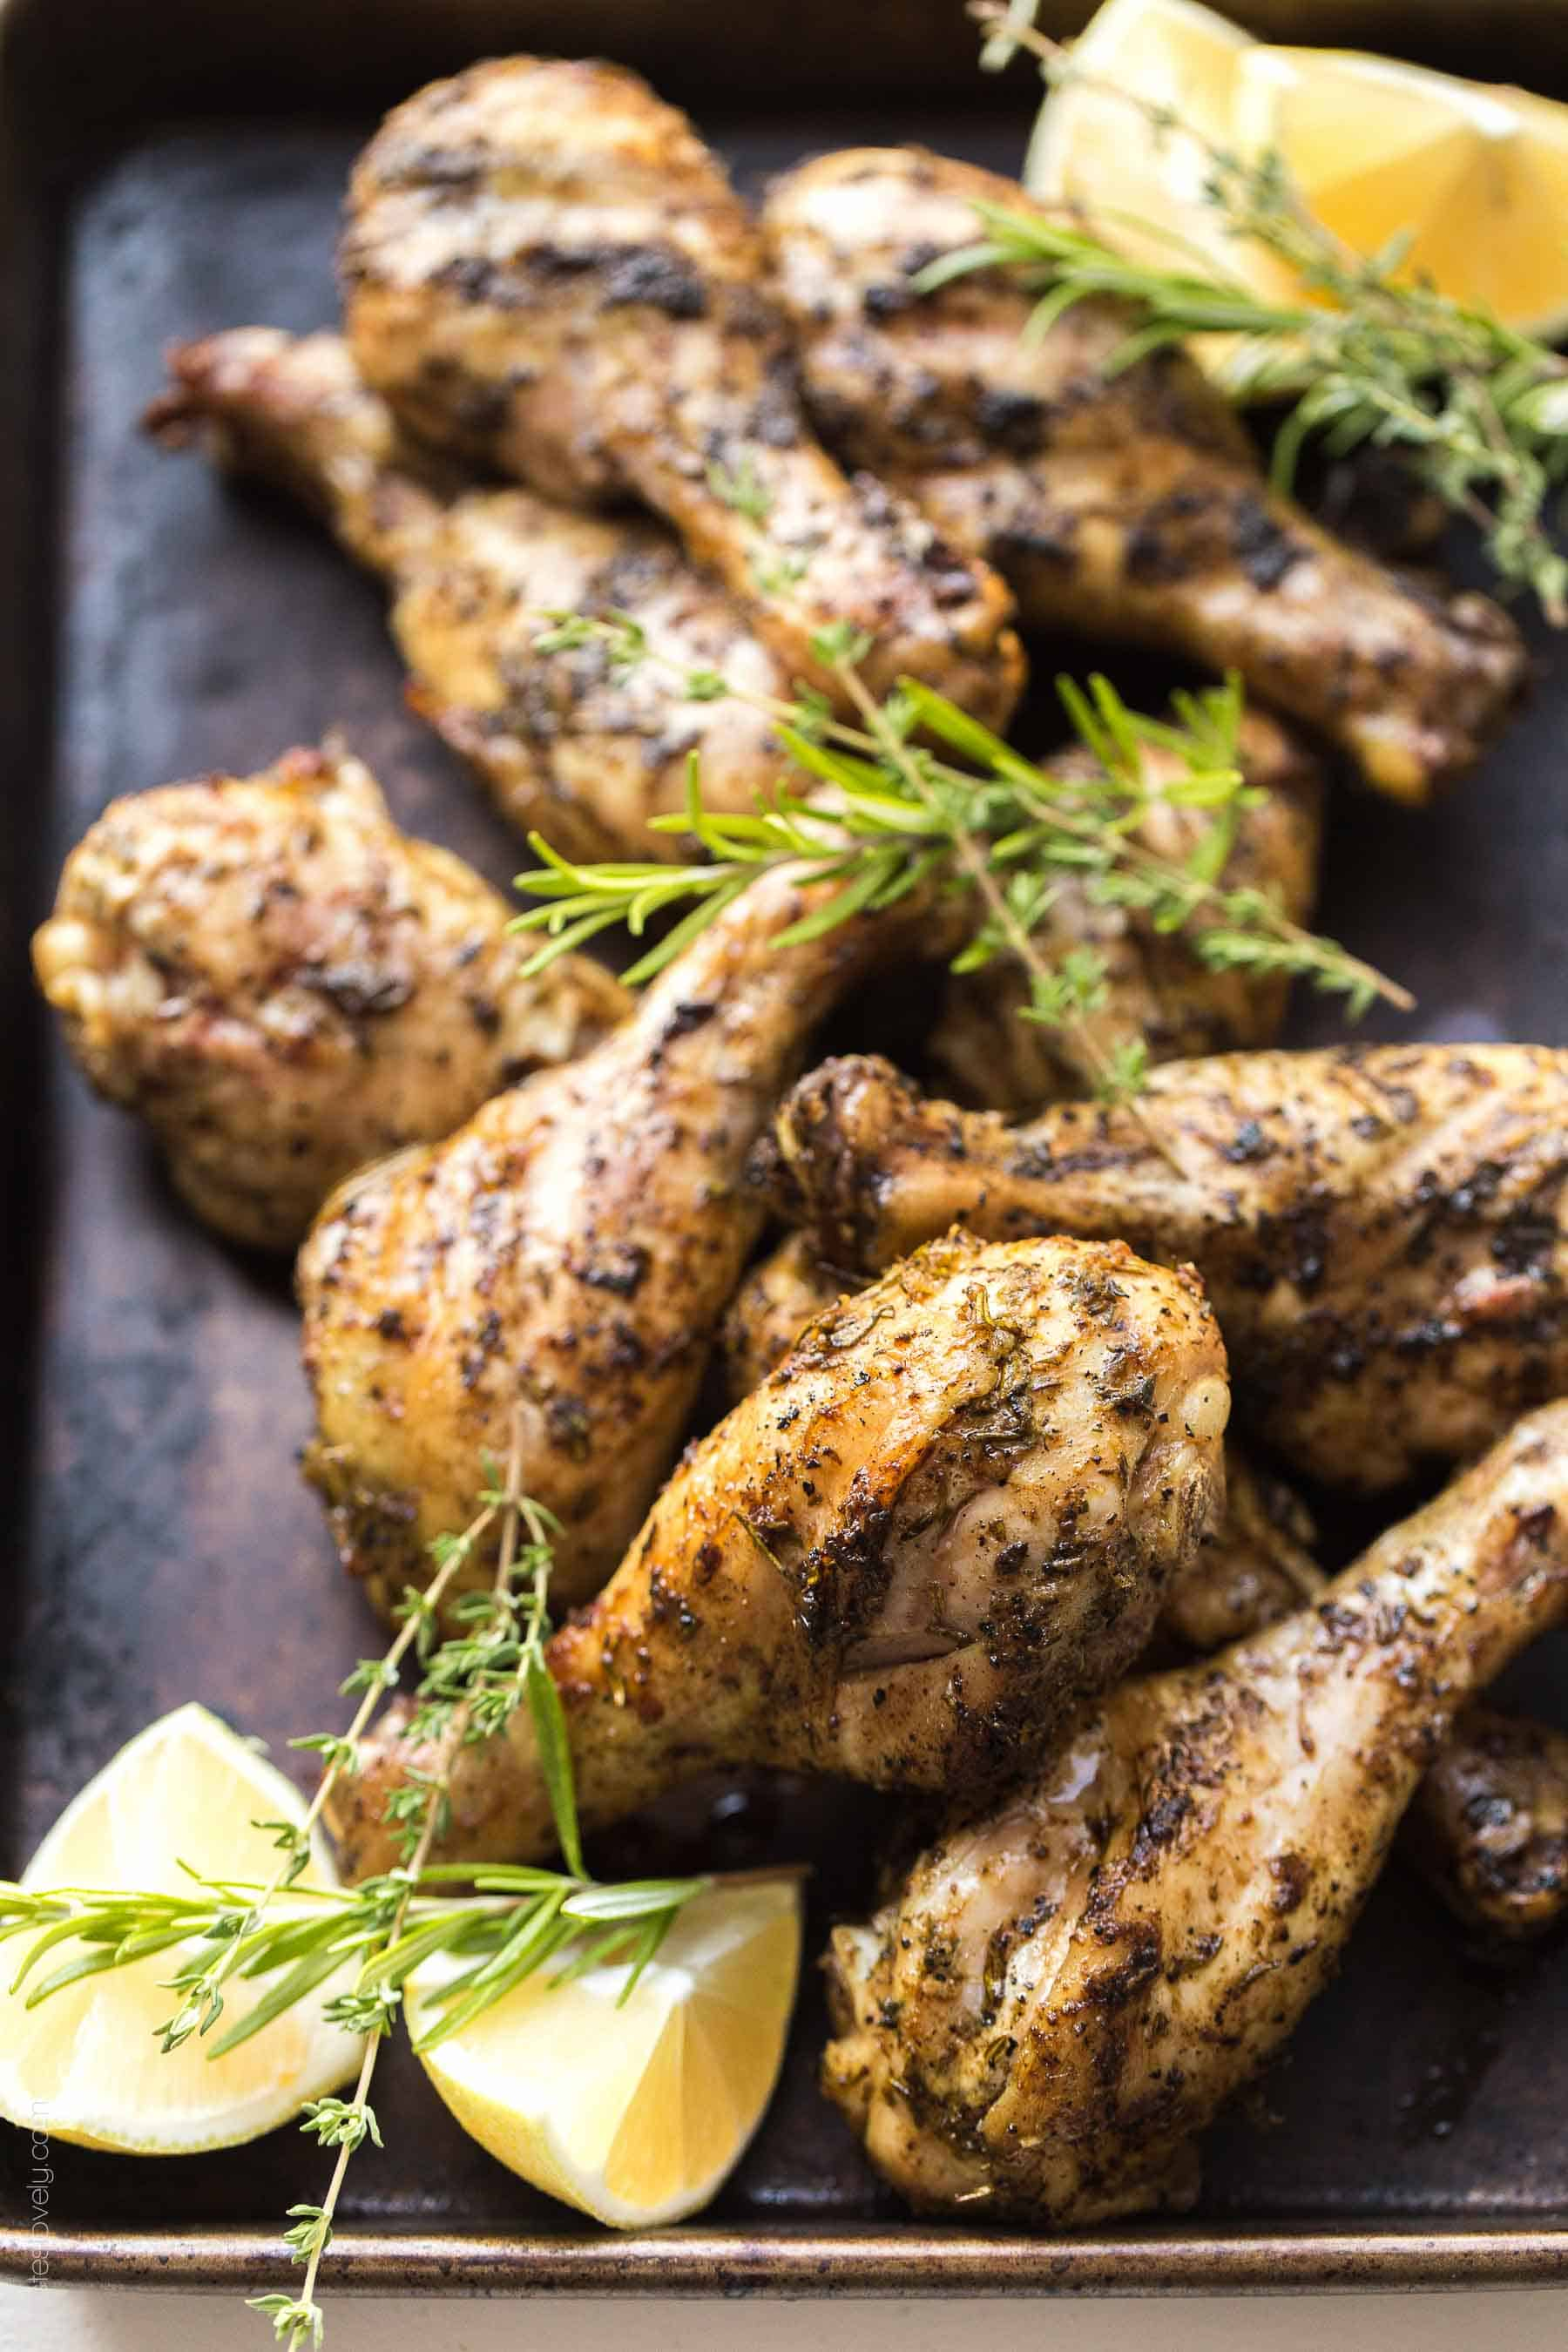 Paleo & Whole30 Lemon Herb Grilled Chicken Drumsticks - a simple and healthy dinner recipe! (gluten free, dairy free, sugar free, grain free, clean eating, low carb)